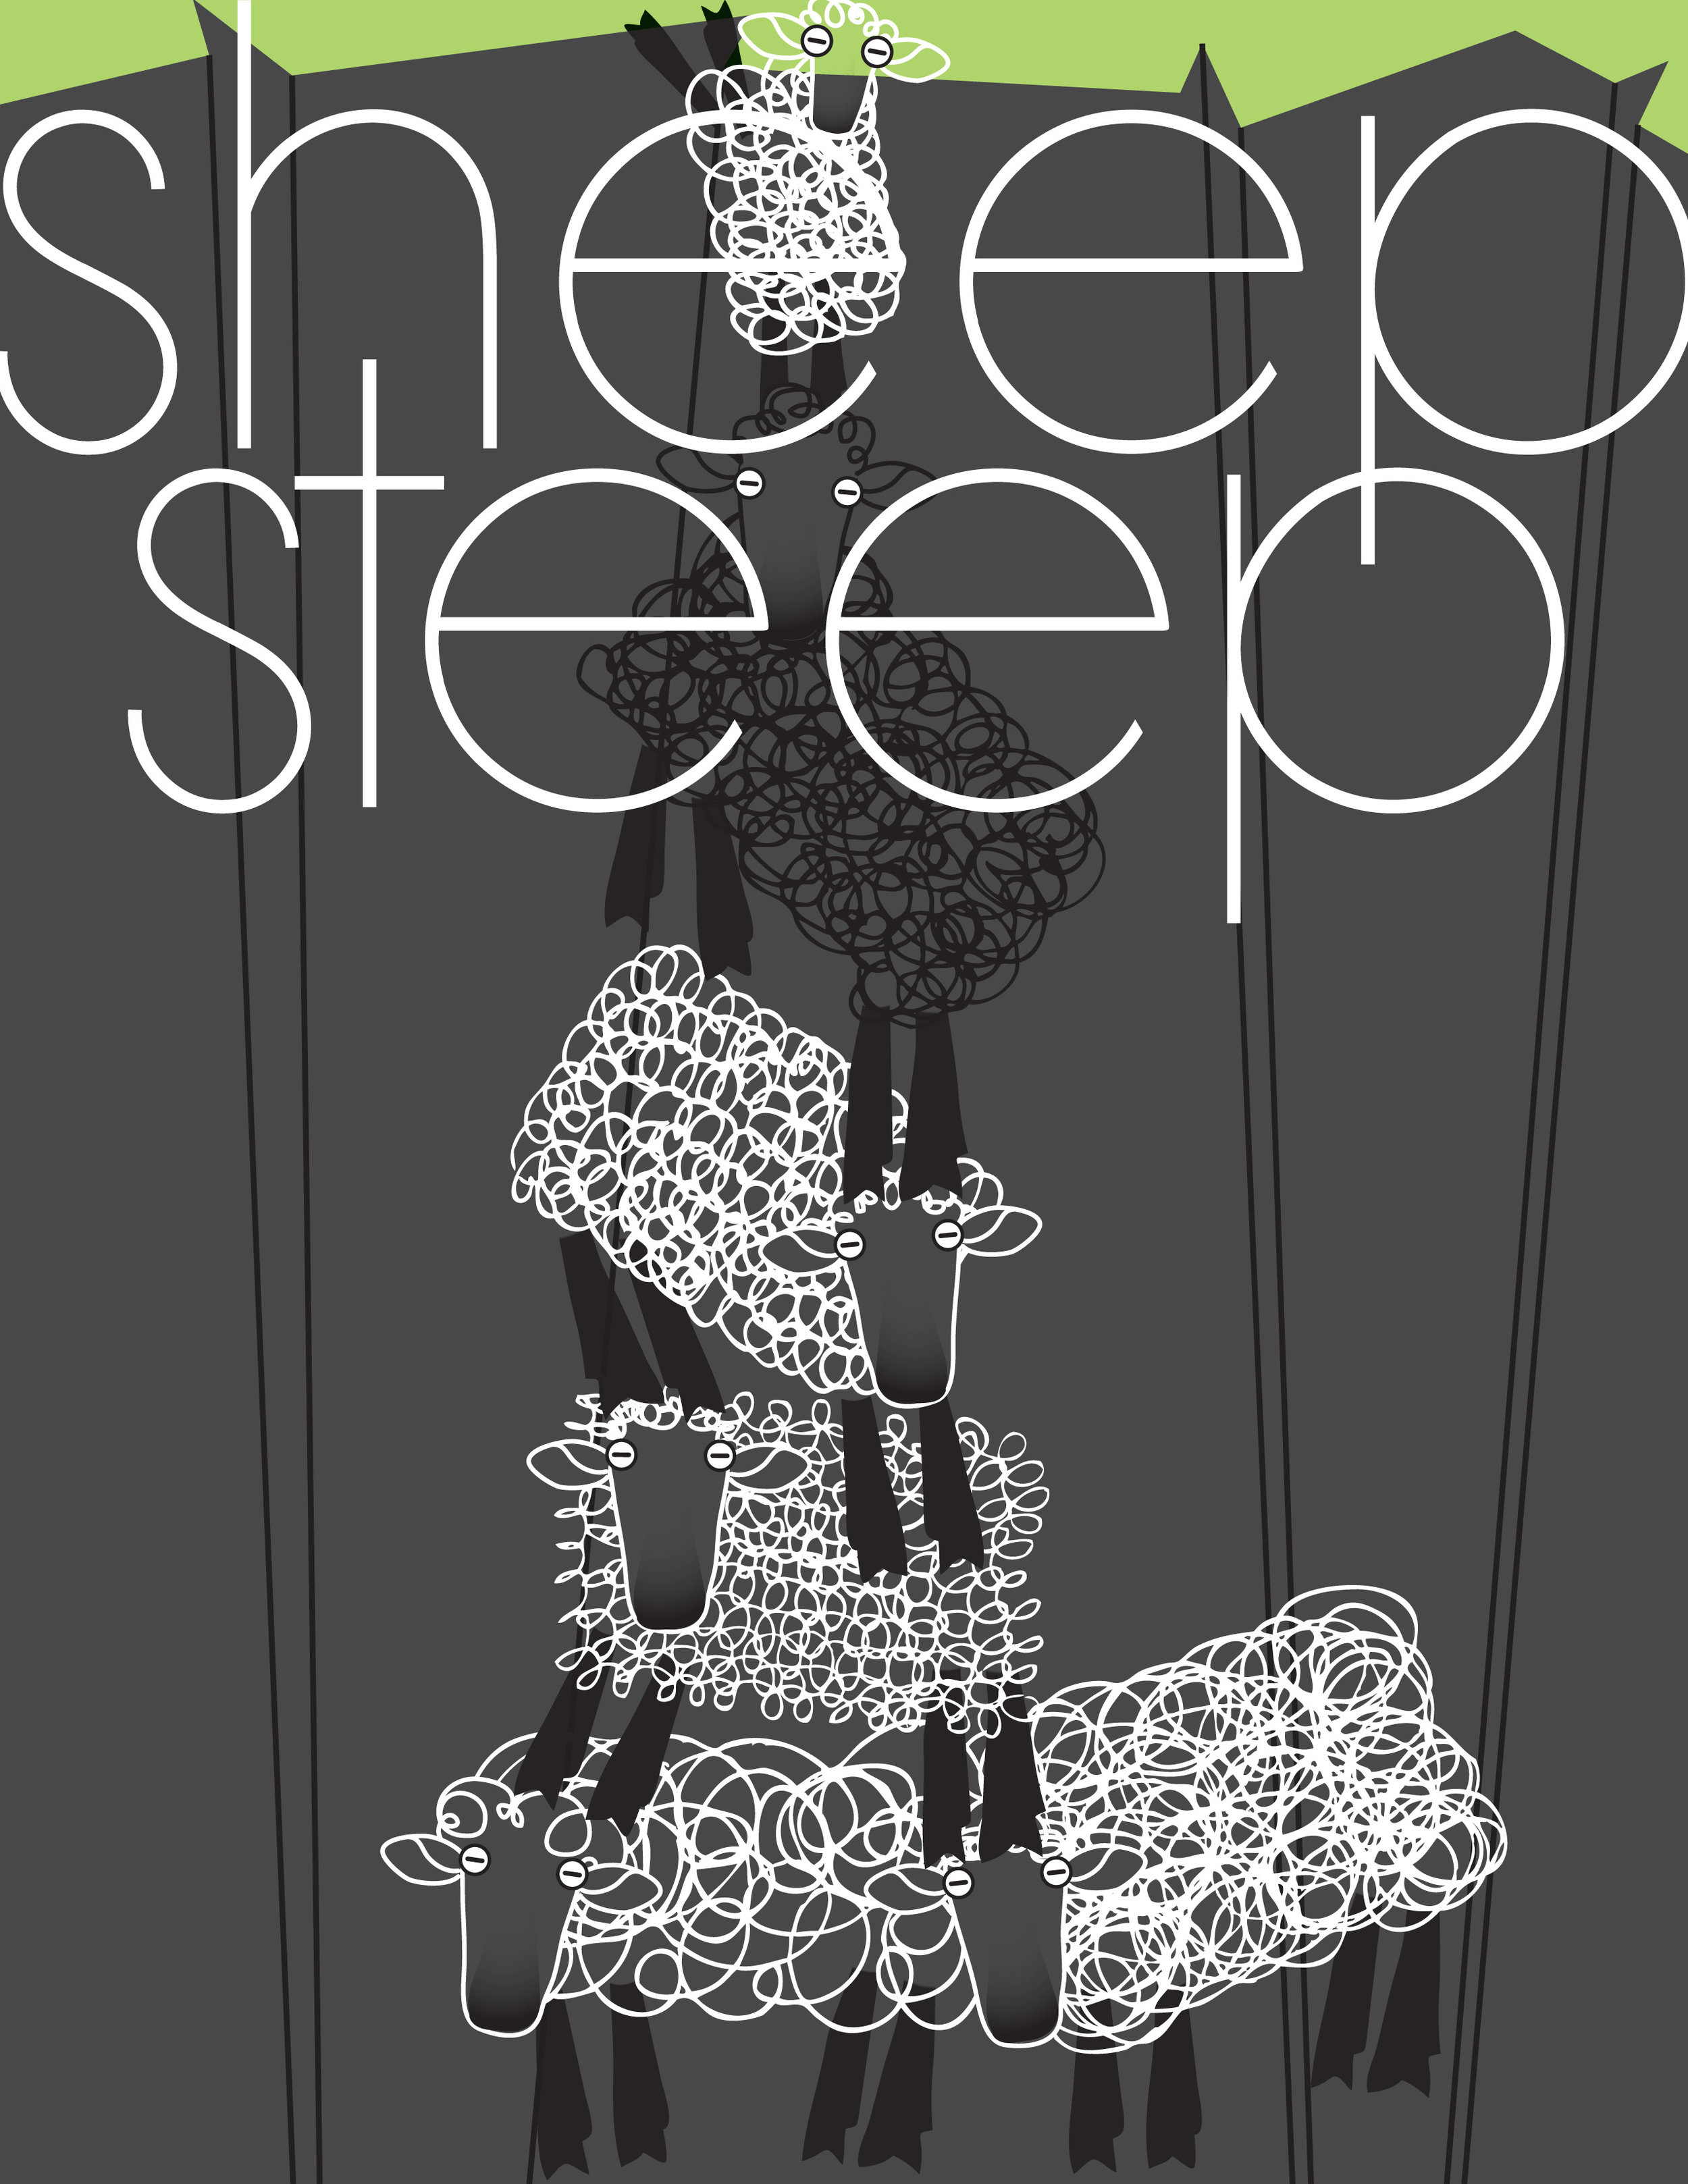 Sheep Sleep Book 2-10.jpg